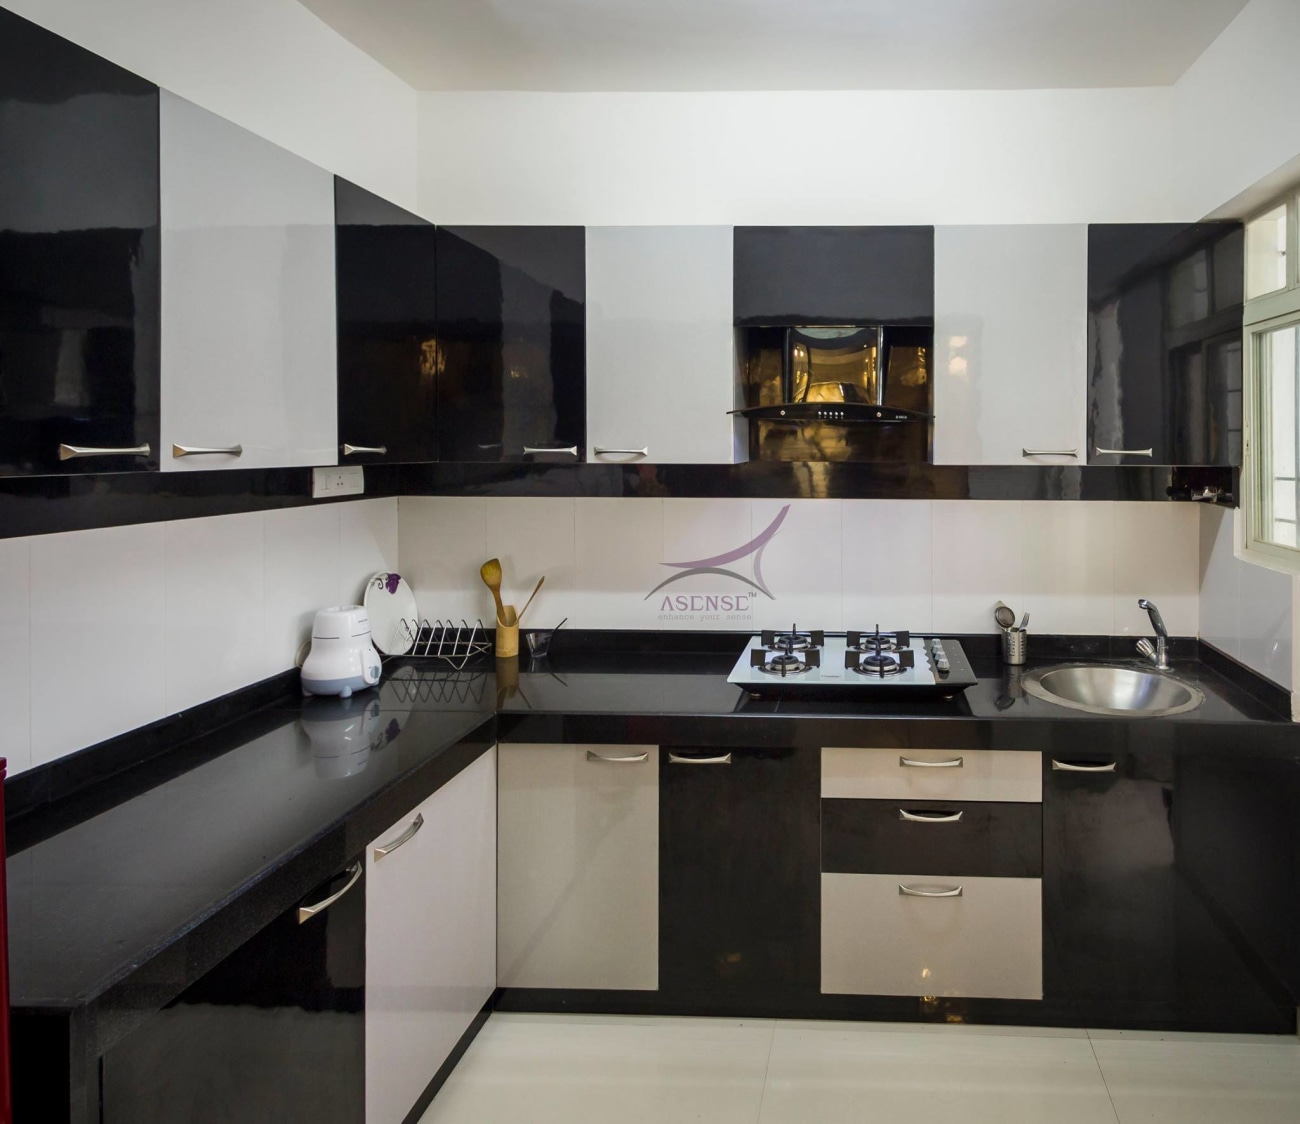 Black And White Themed Modular Kitchen by Snigdha Ghosh Modular-kitchen Contemporary | Interior Design Photos & Ideas